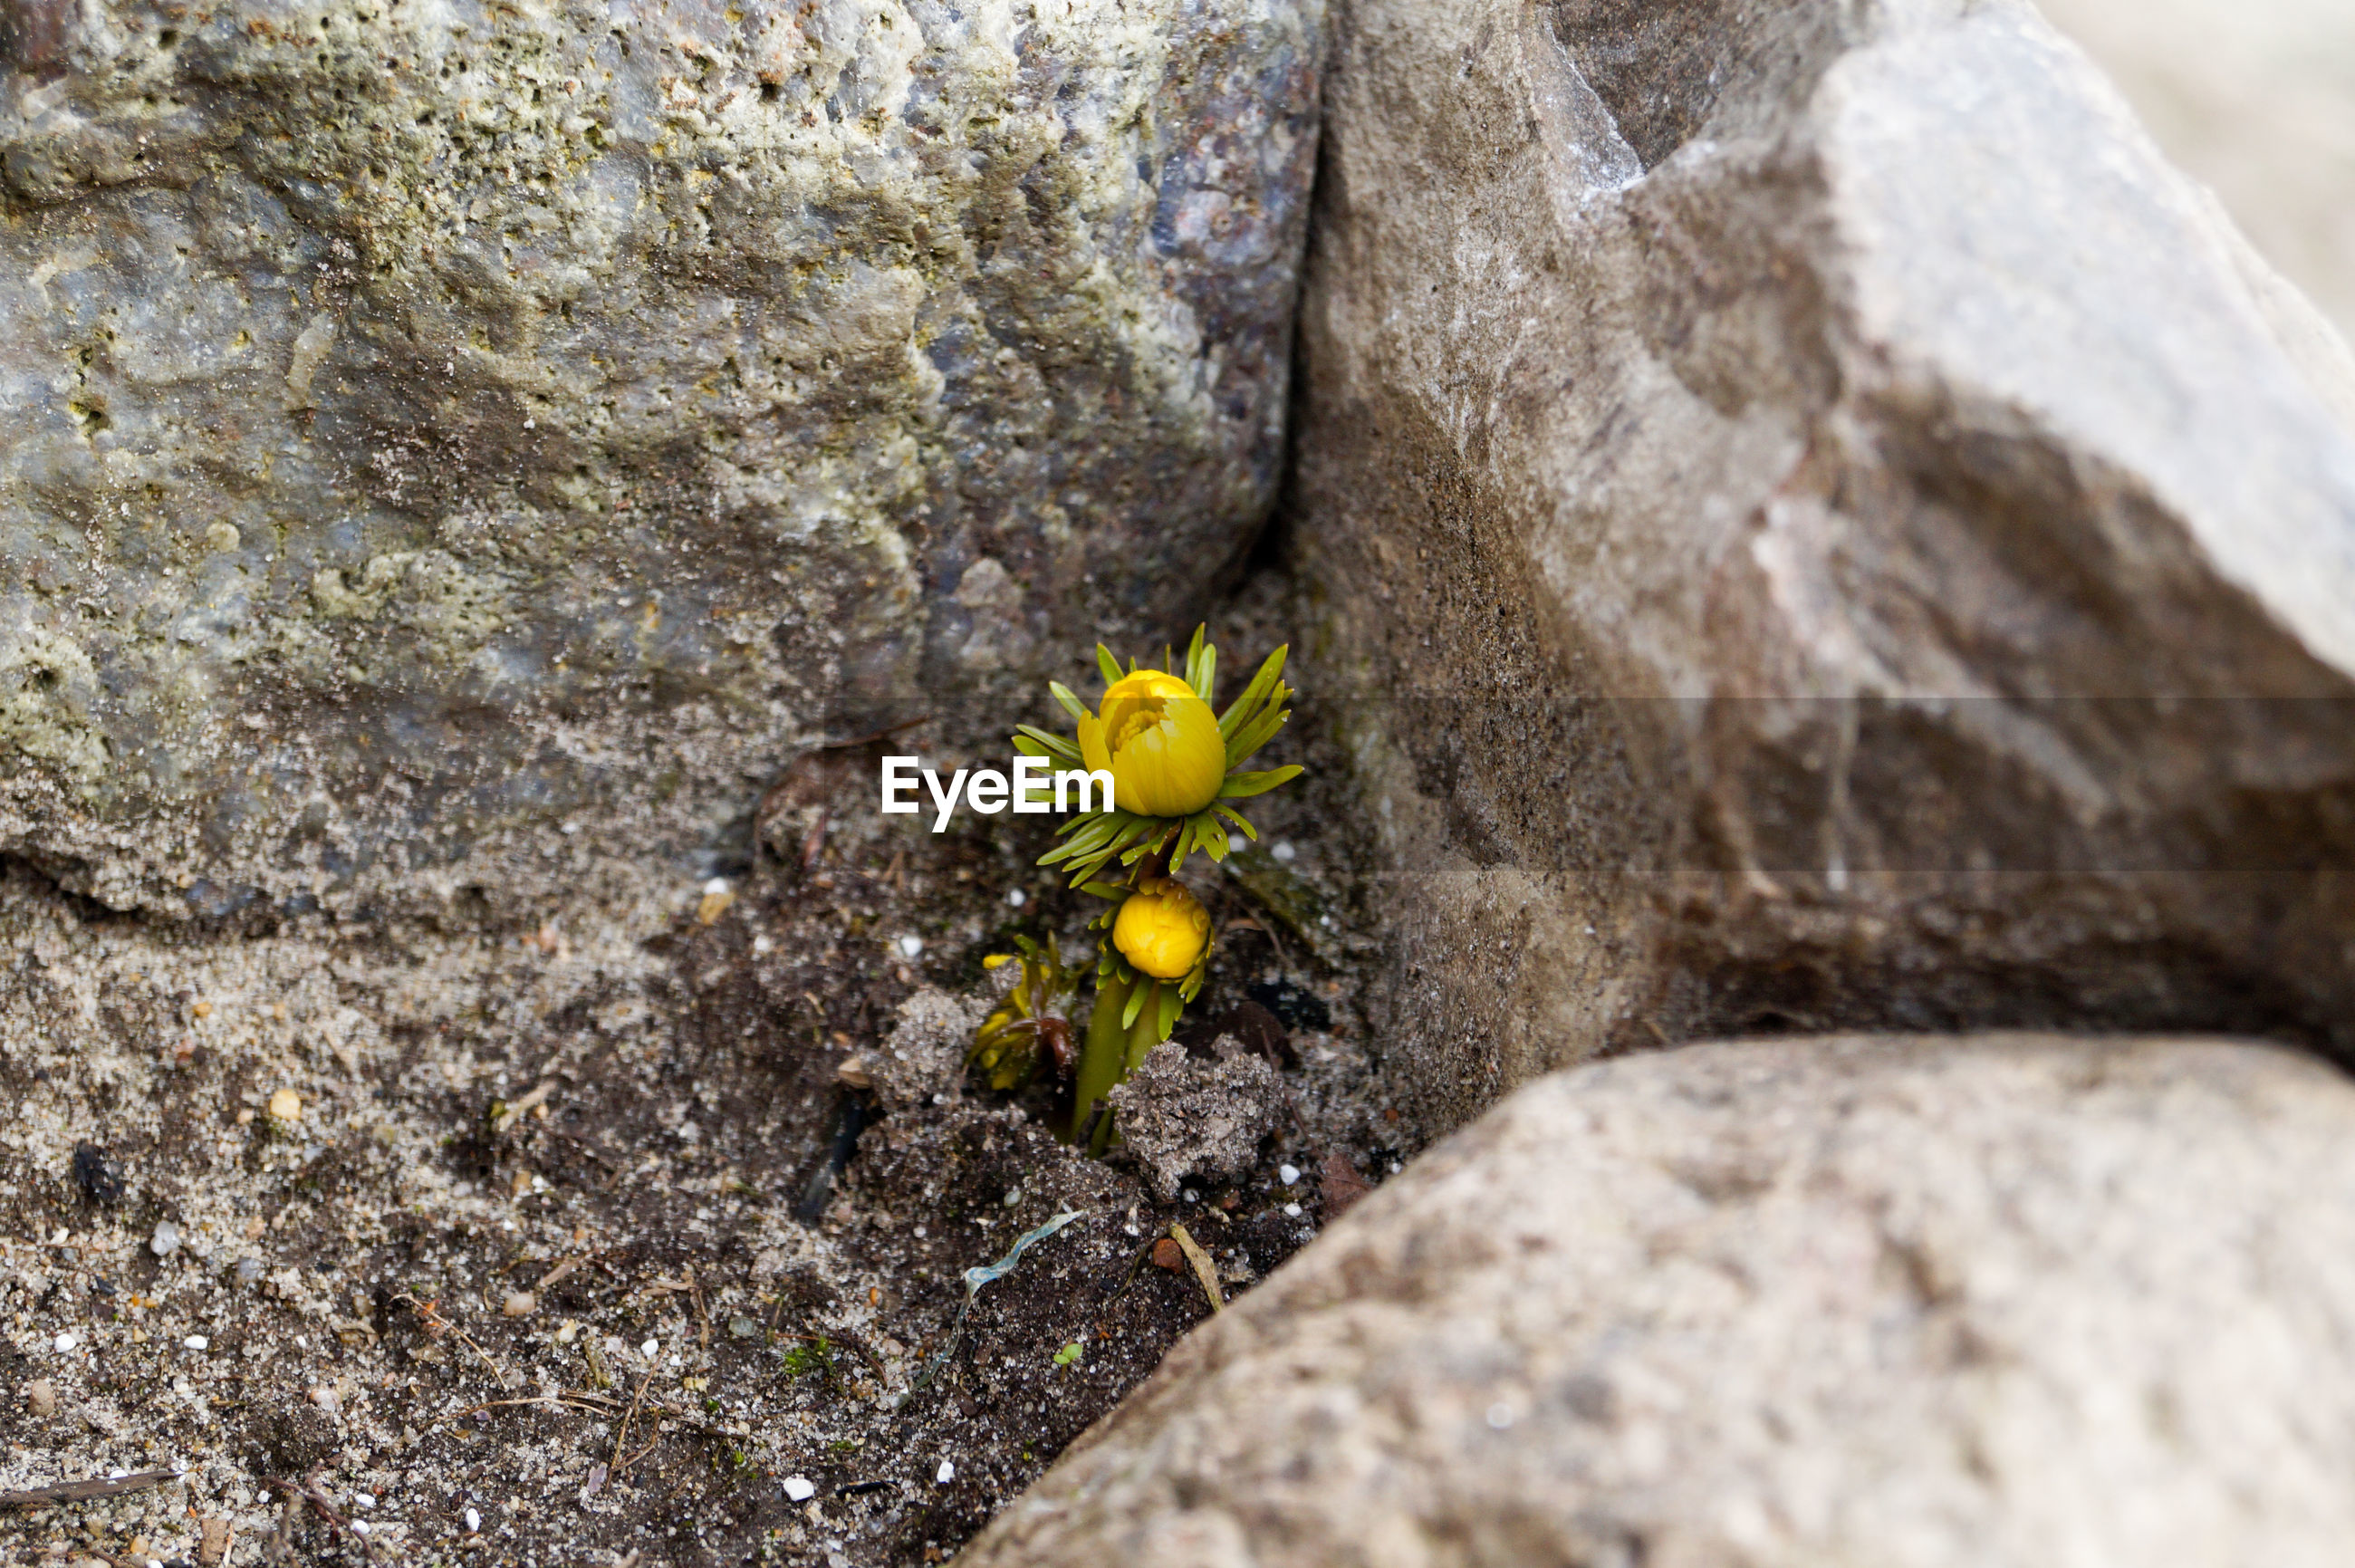 High angle view of flower growing amidst rock